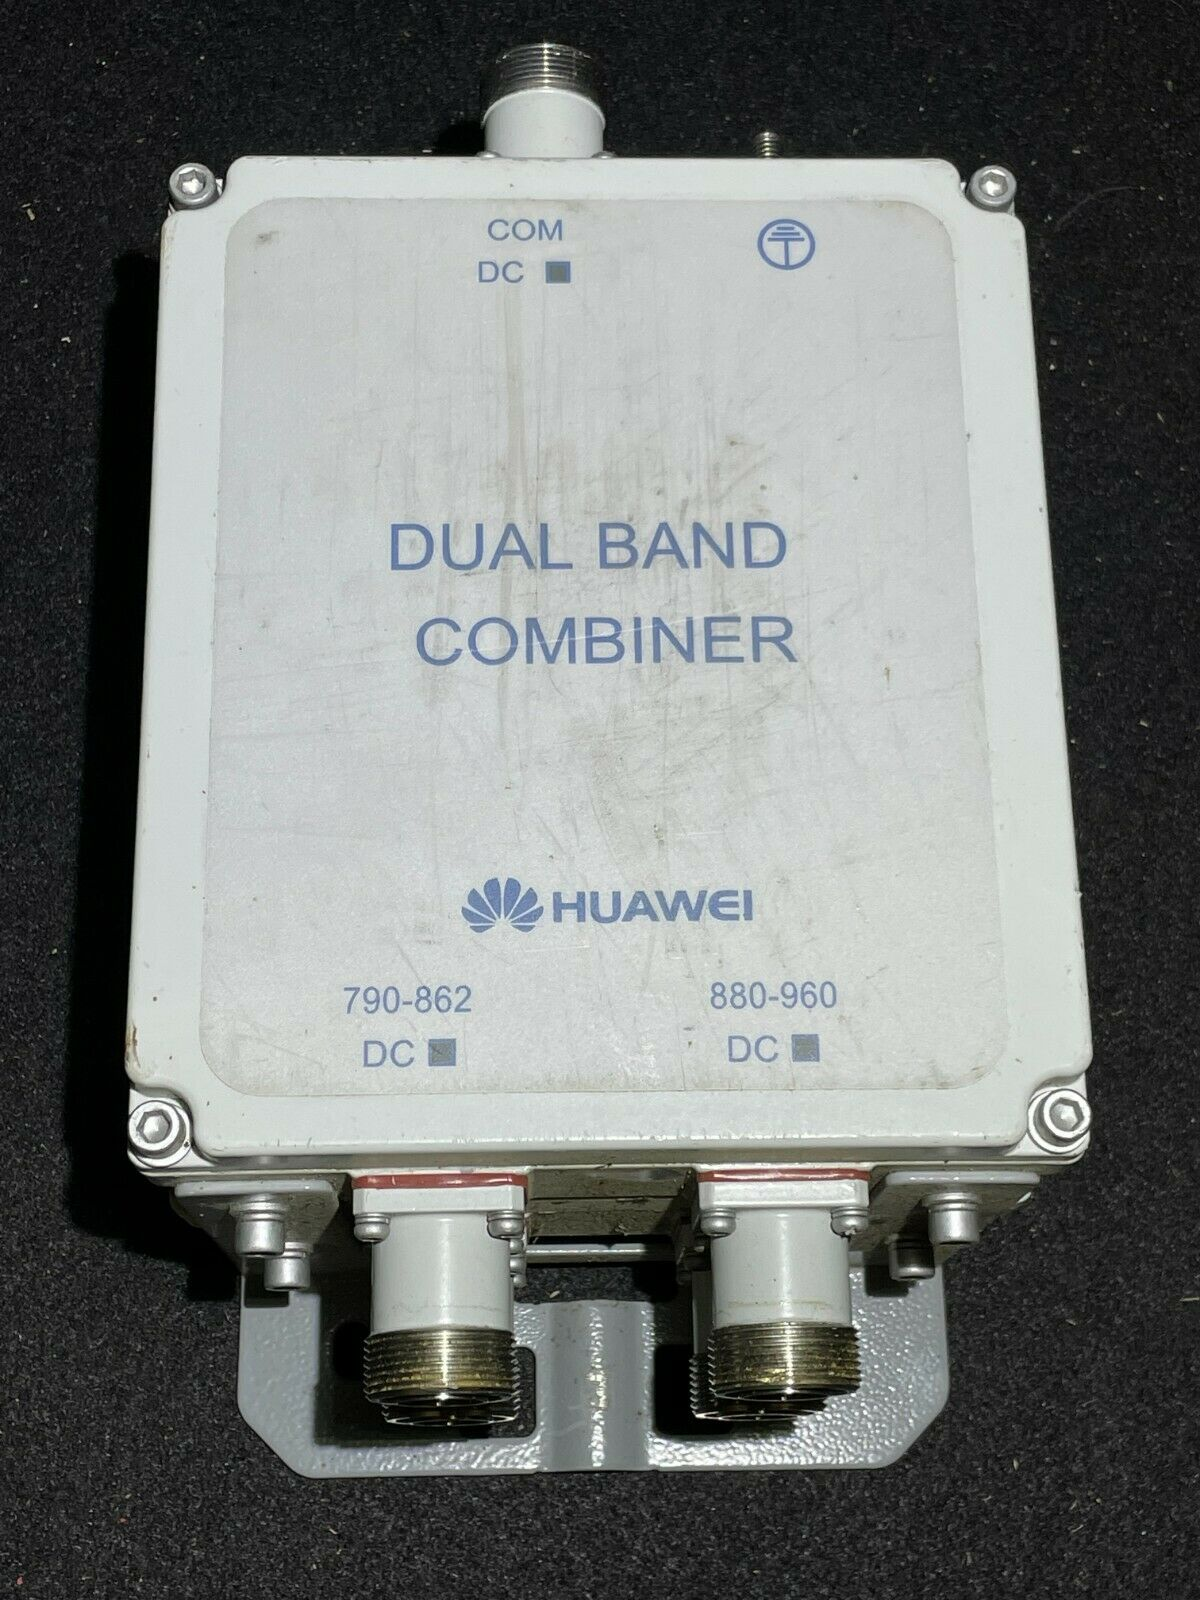 DC-790-862/880-960-11 ACOMD2H18 DUAL BAND COMBINER 3pcs avail. Buy it now for 150.00